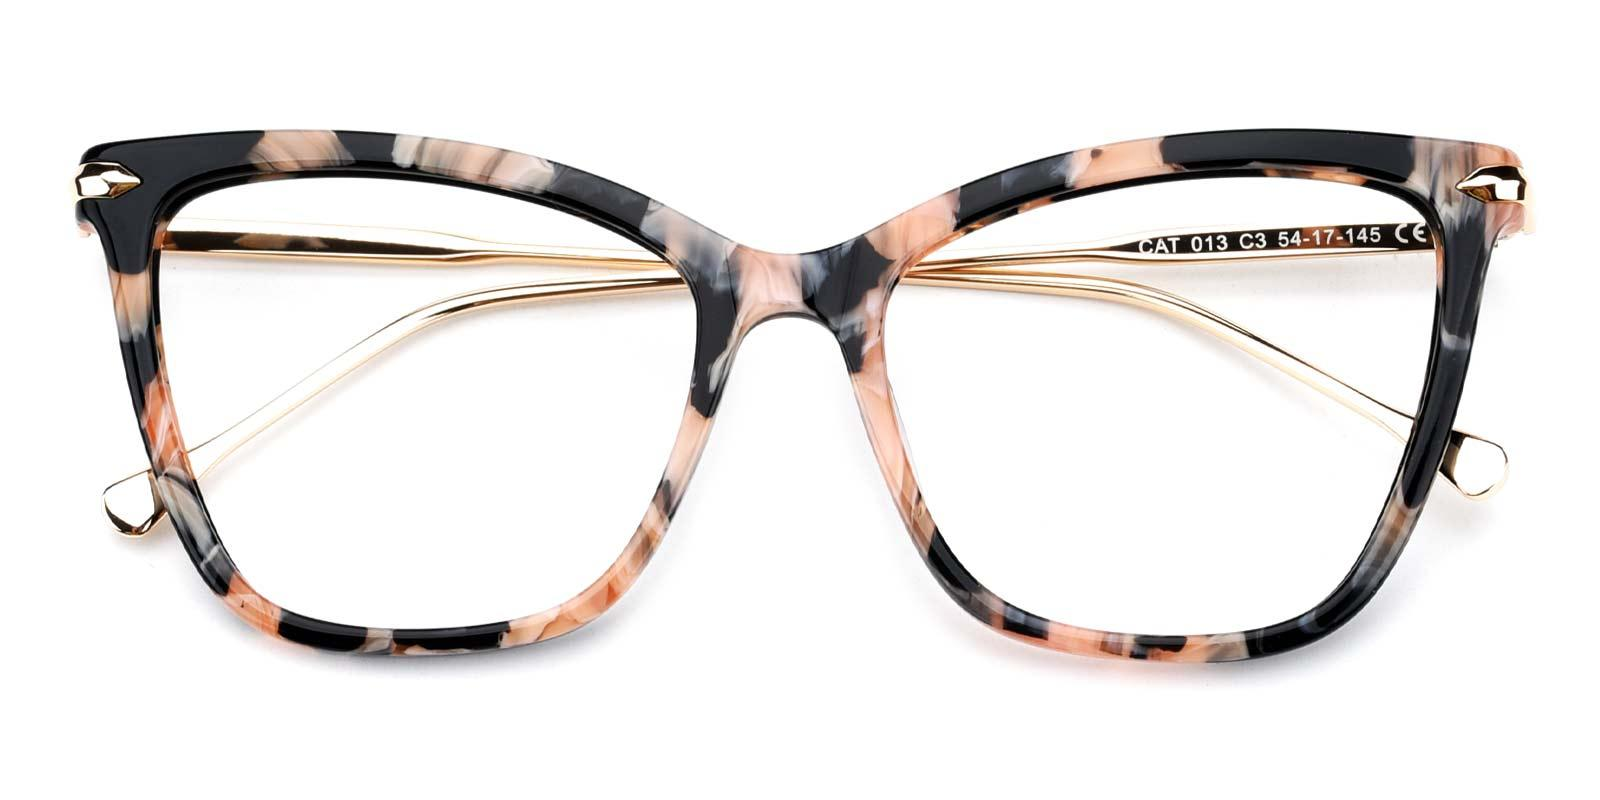 Queenie-Pink-Cat-Combination-Eyeglasses-detail